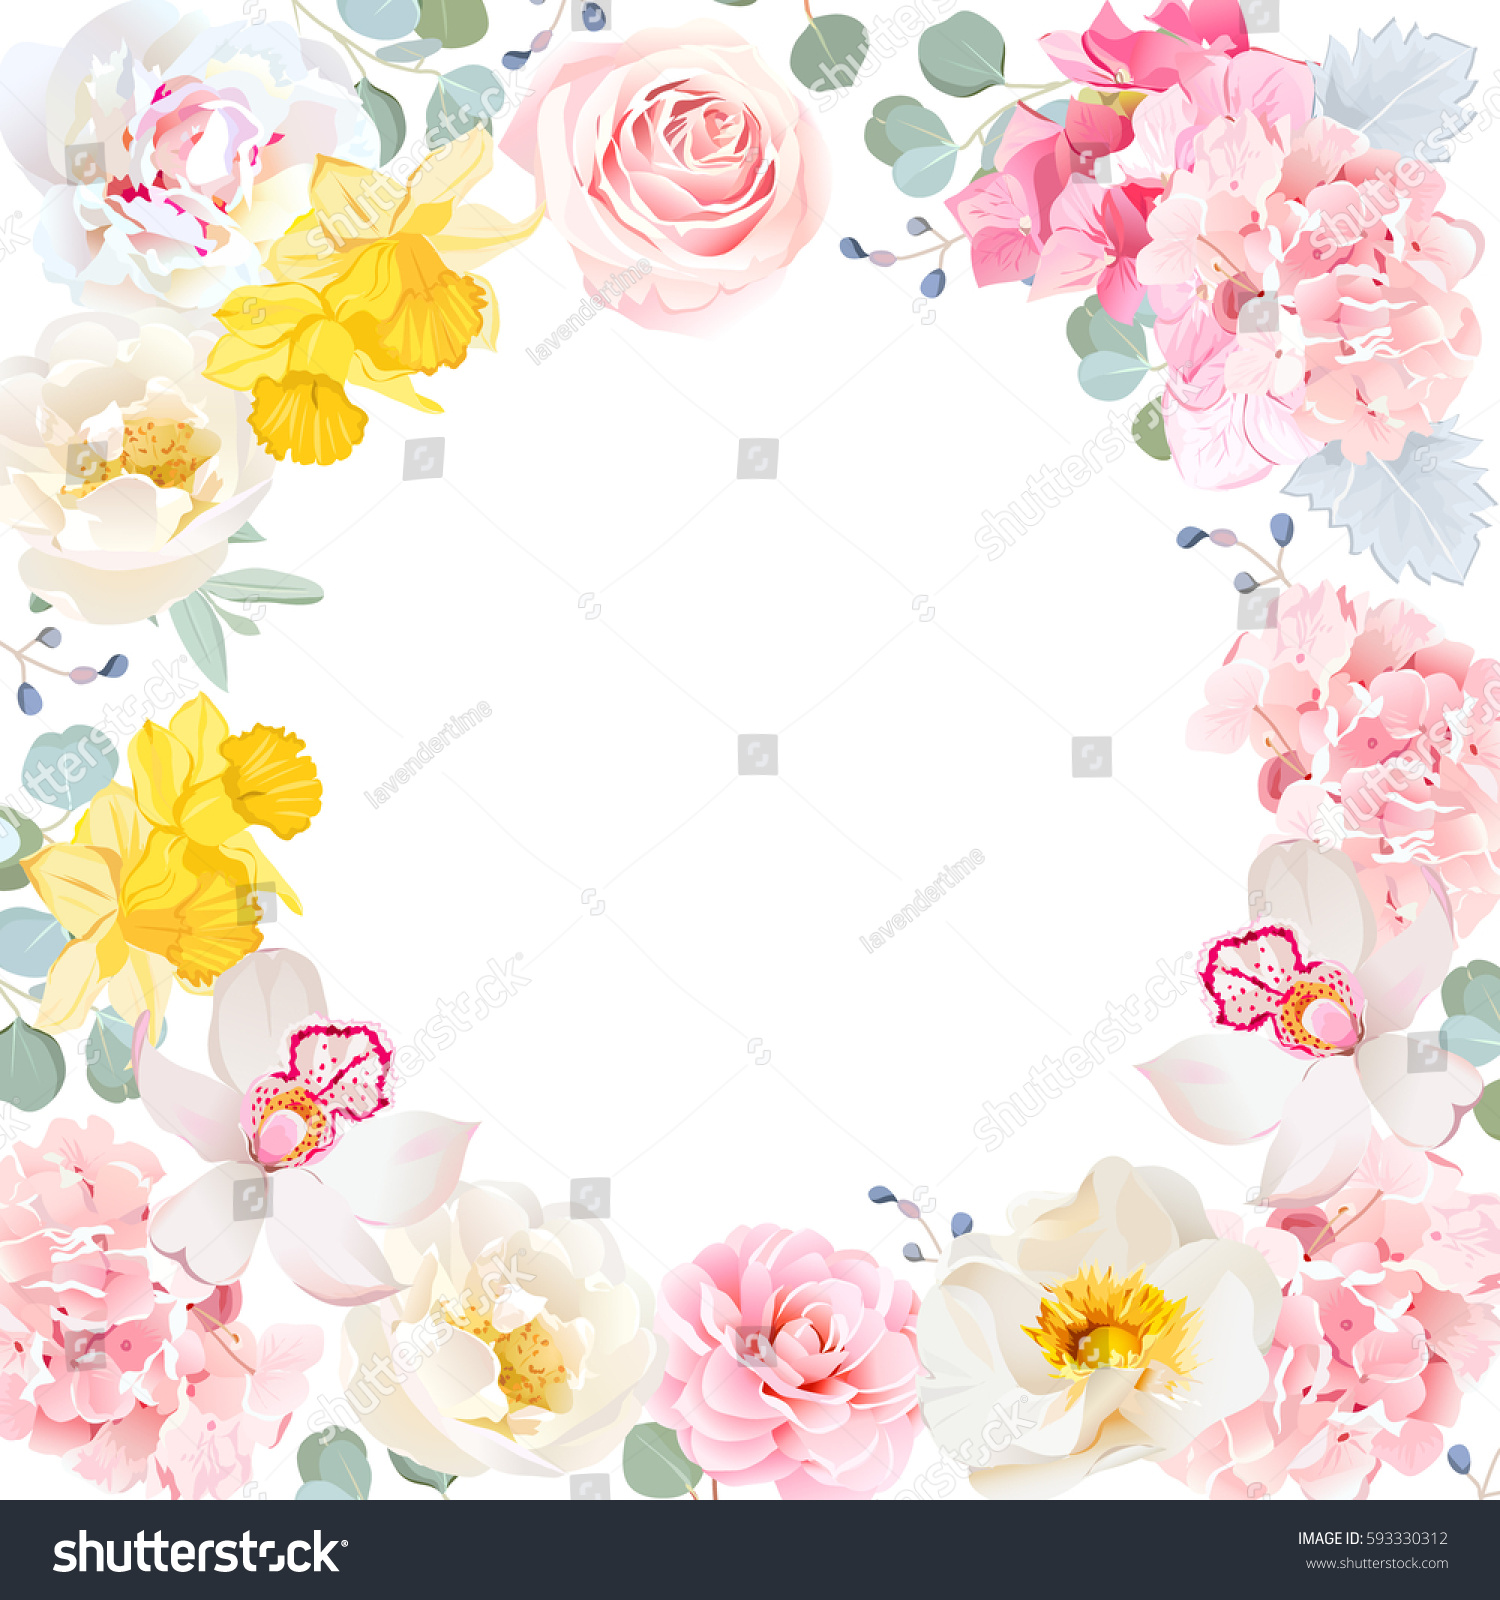 Vector round frame with pink flowers on white background in pastel - Floral Vector Round Frame With Pink Rose Hydrangea Carnation Daffodils Peony